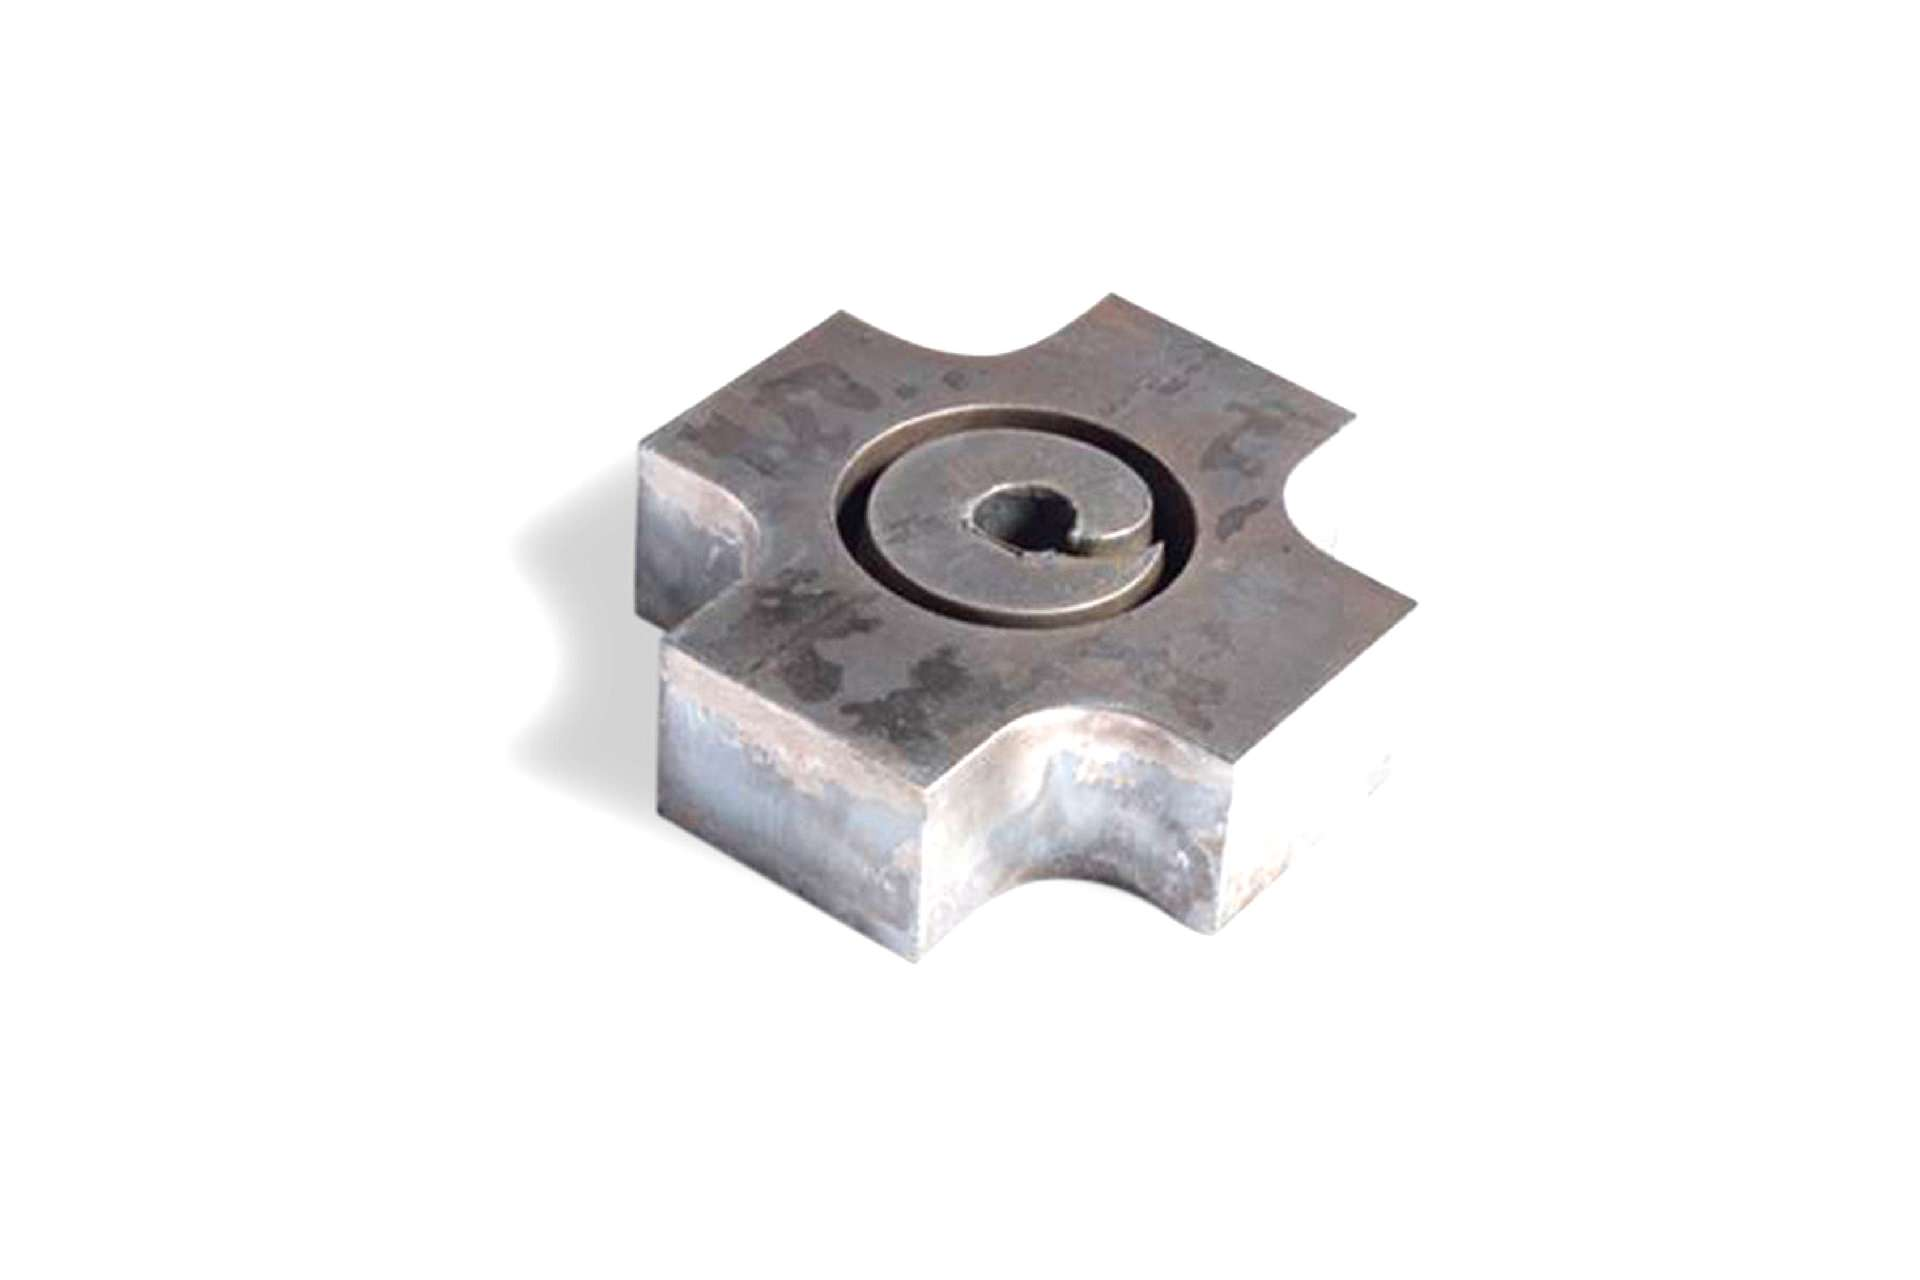 Metal parts cut by oxy-fuel – 03